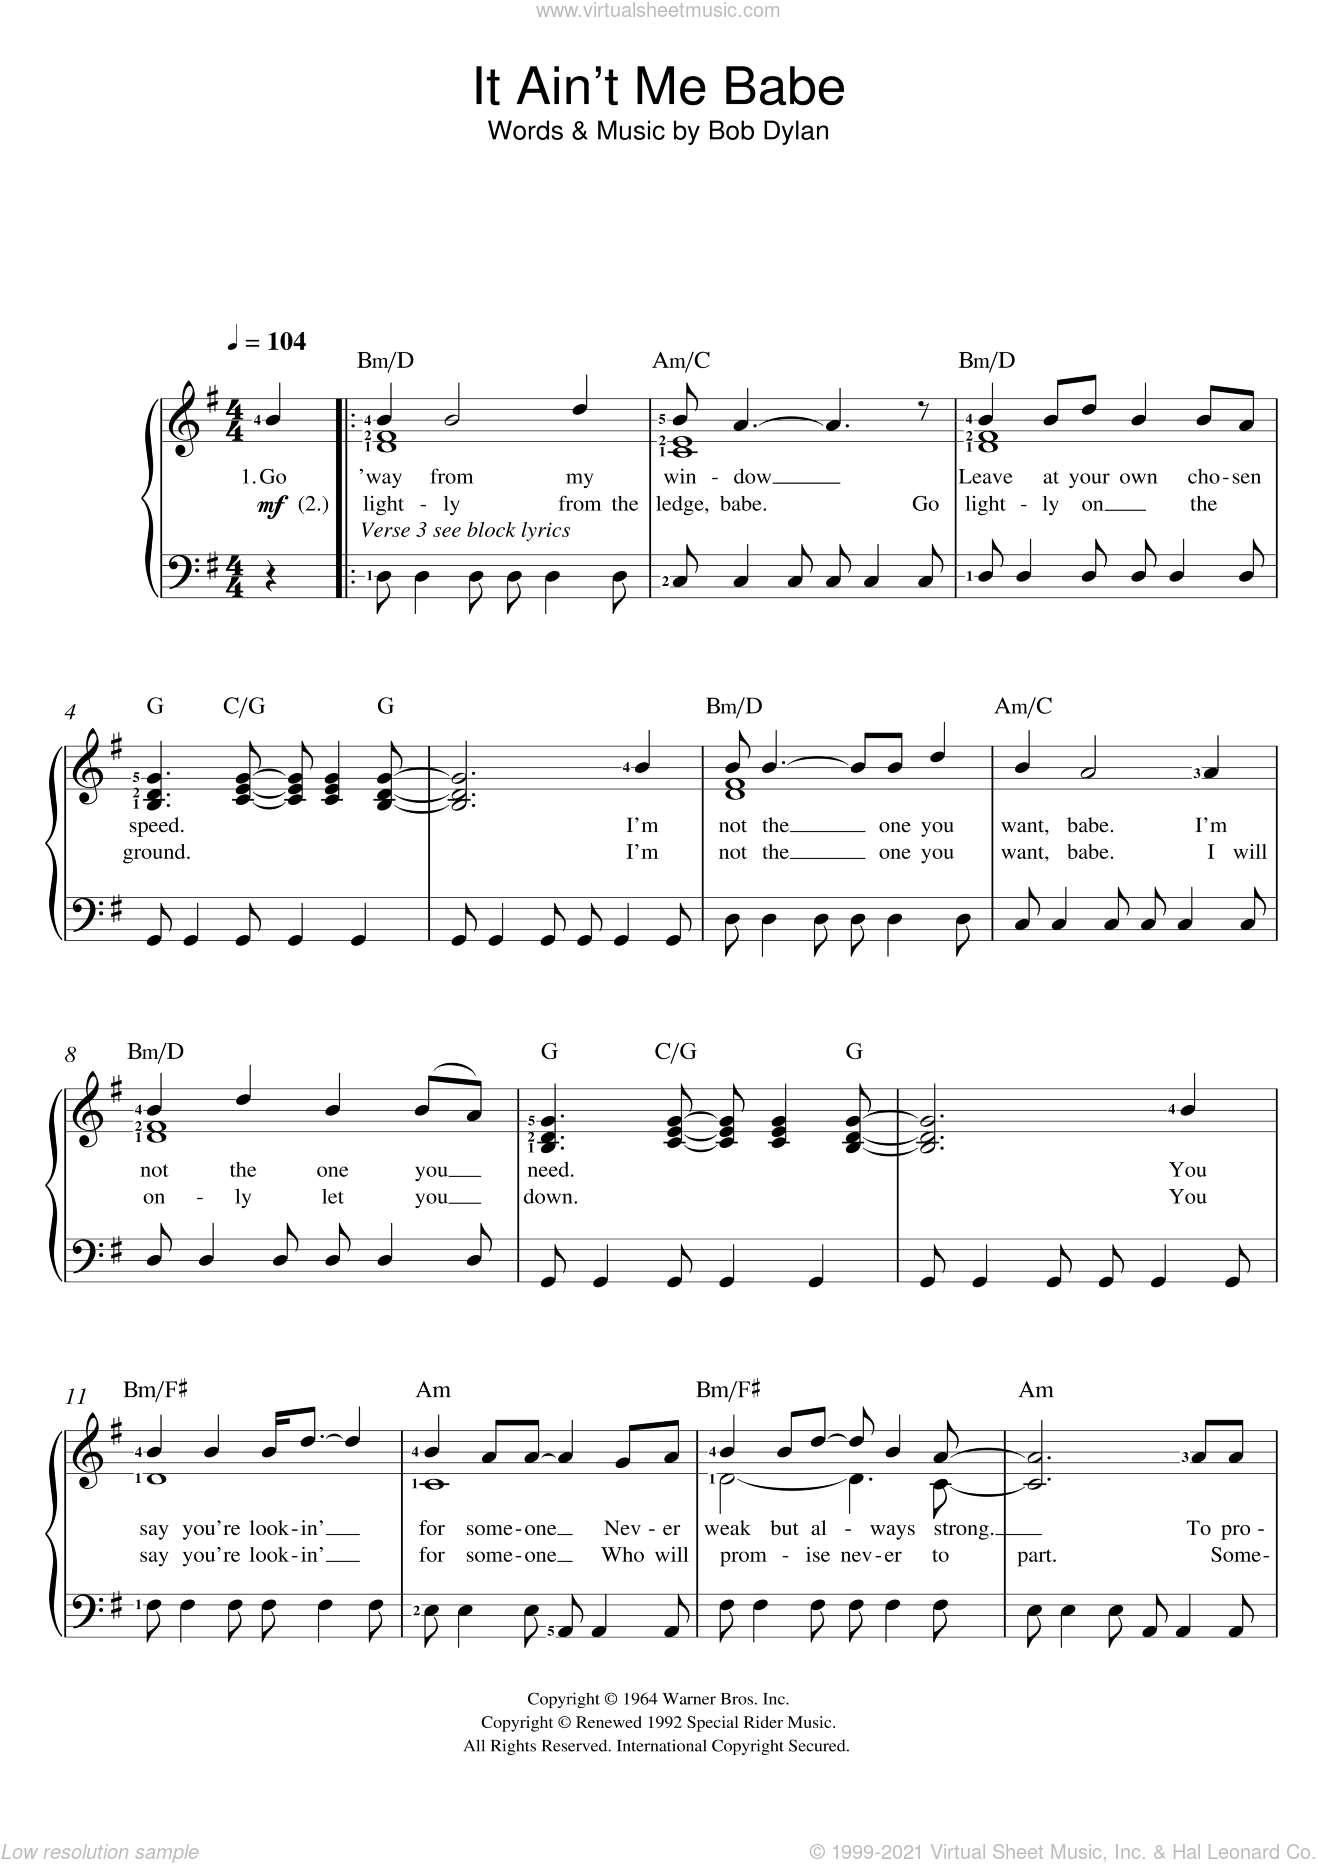 It Ain't Me Babe sheet music for voice and piano by Bob Dylan, intermediate skill level